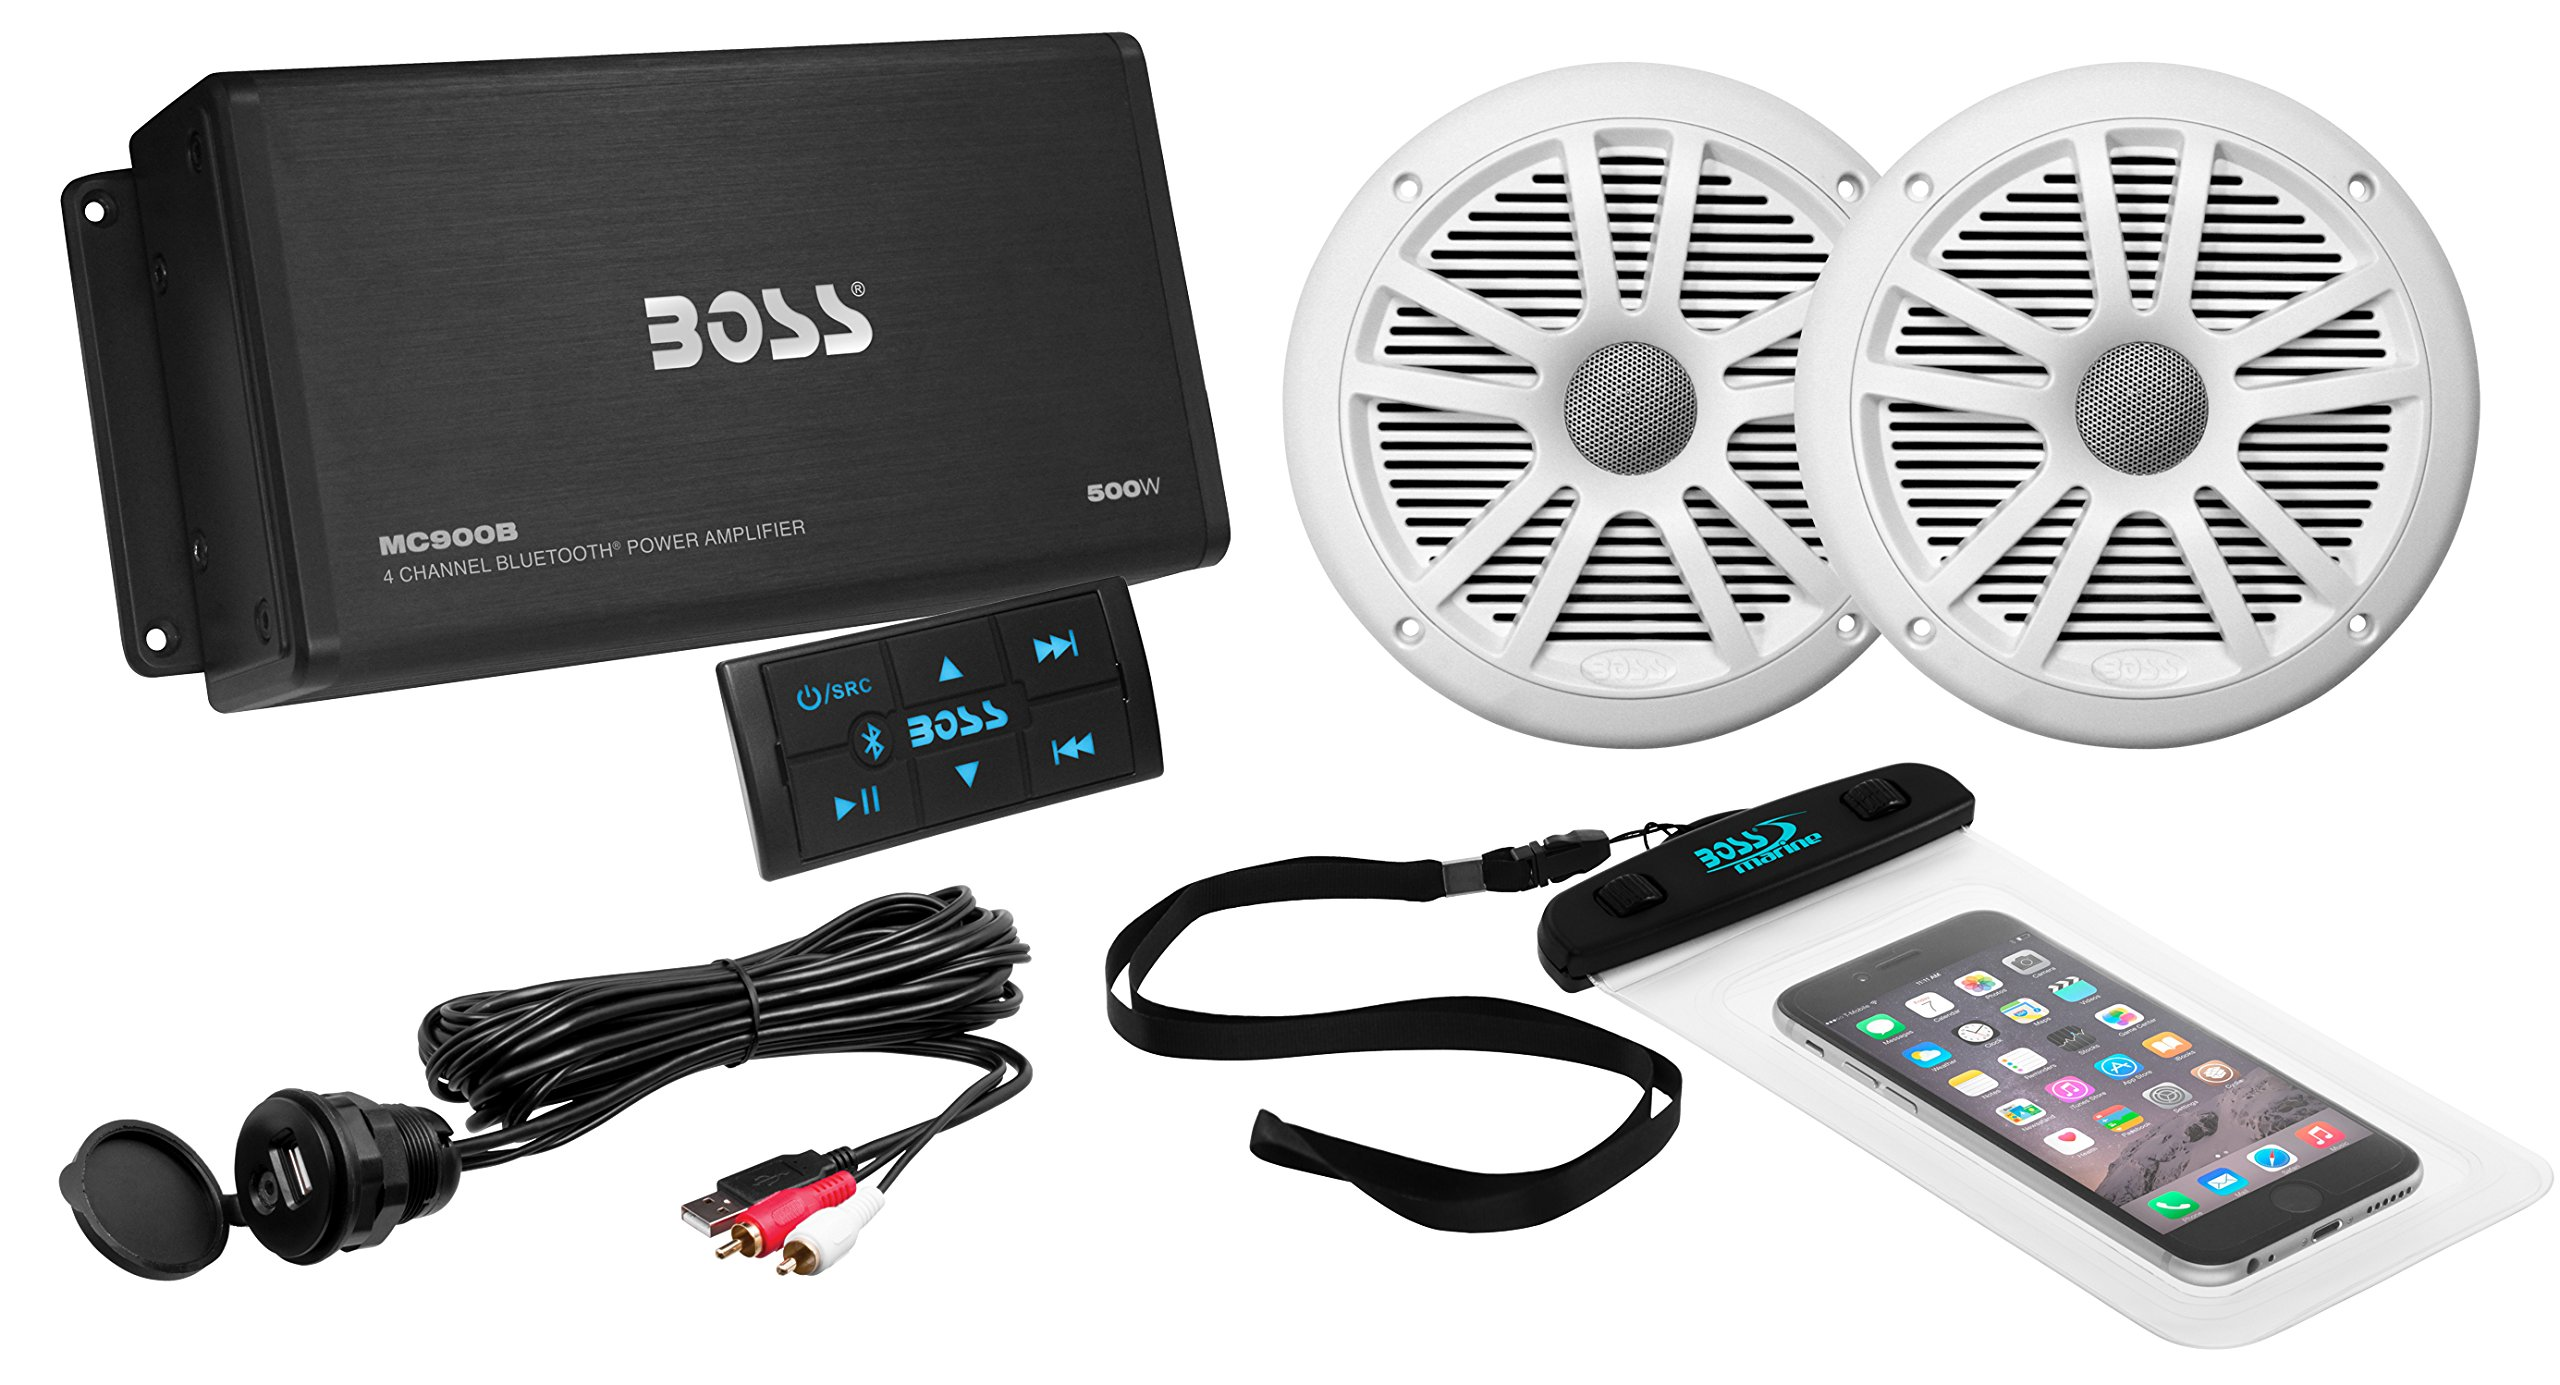 BOSS Audio Systems ASK902B.6 Marine 500 Watt 4 Channel Amplifier  6.5 Inch Speaker Bluetooth System, Bluetooth Remote, USB Auxiliary Interface Mount, Waterproof Pouch by BOSS Audio Systems